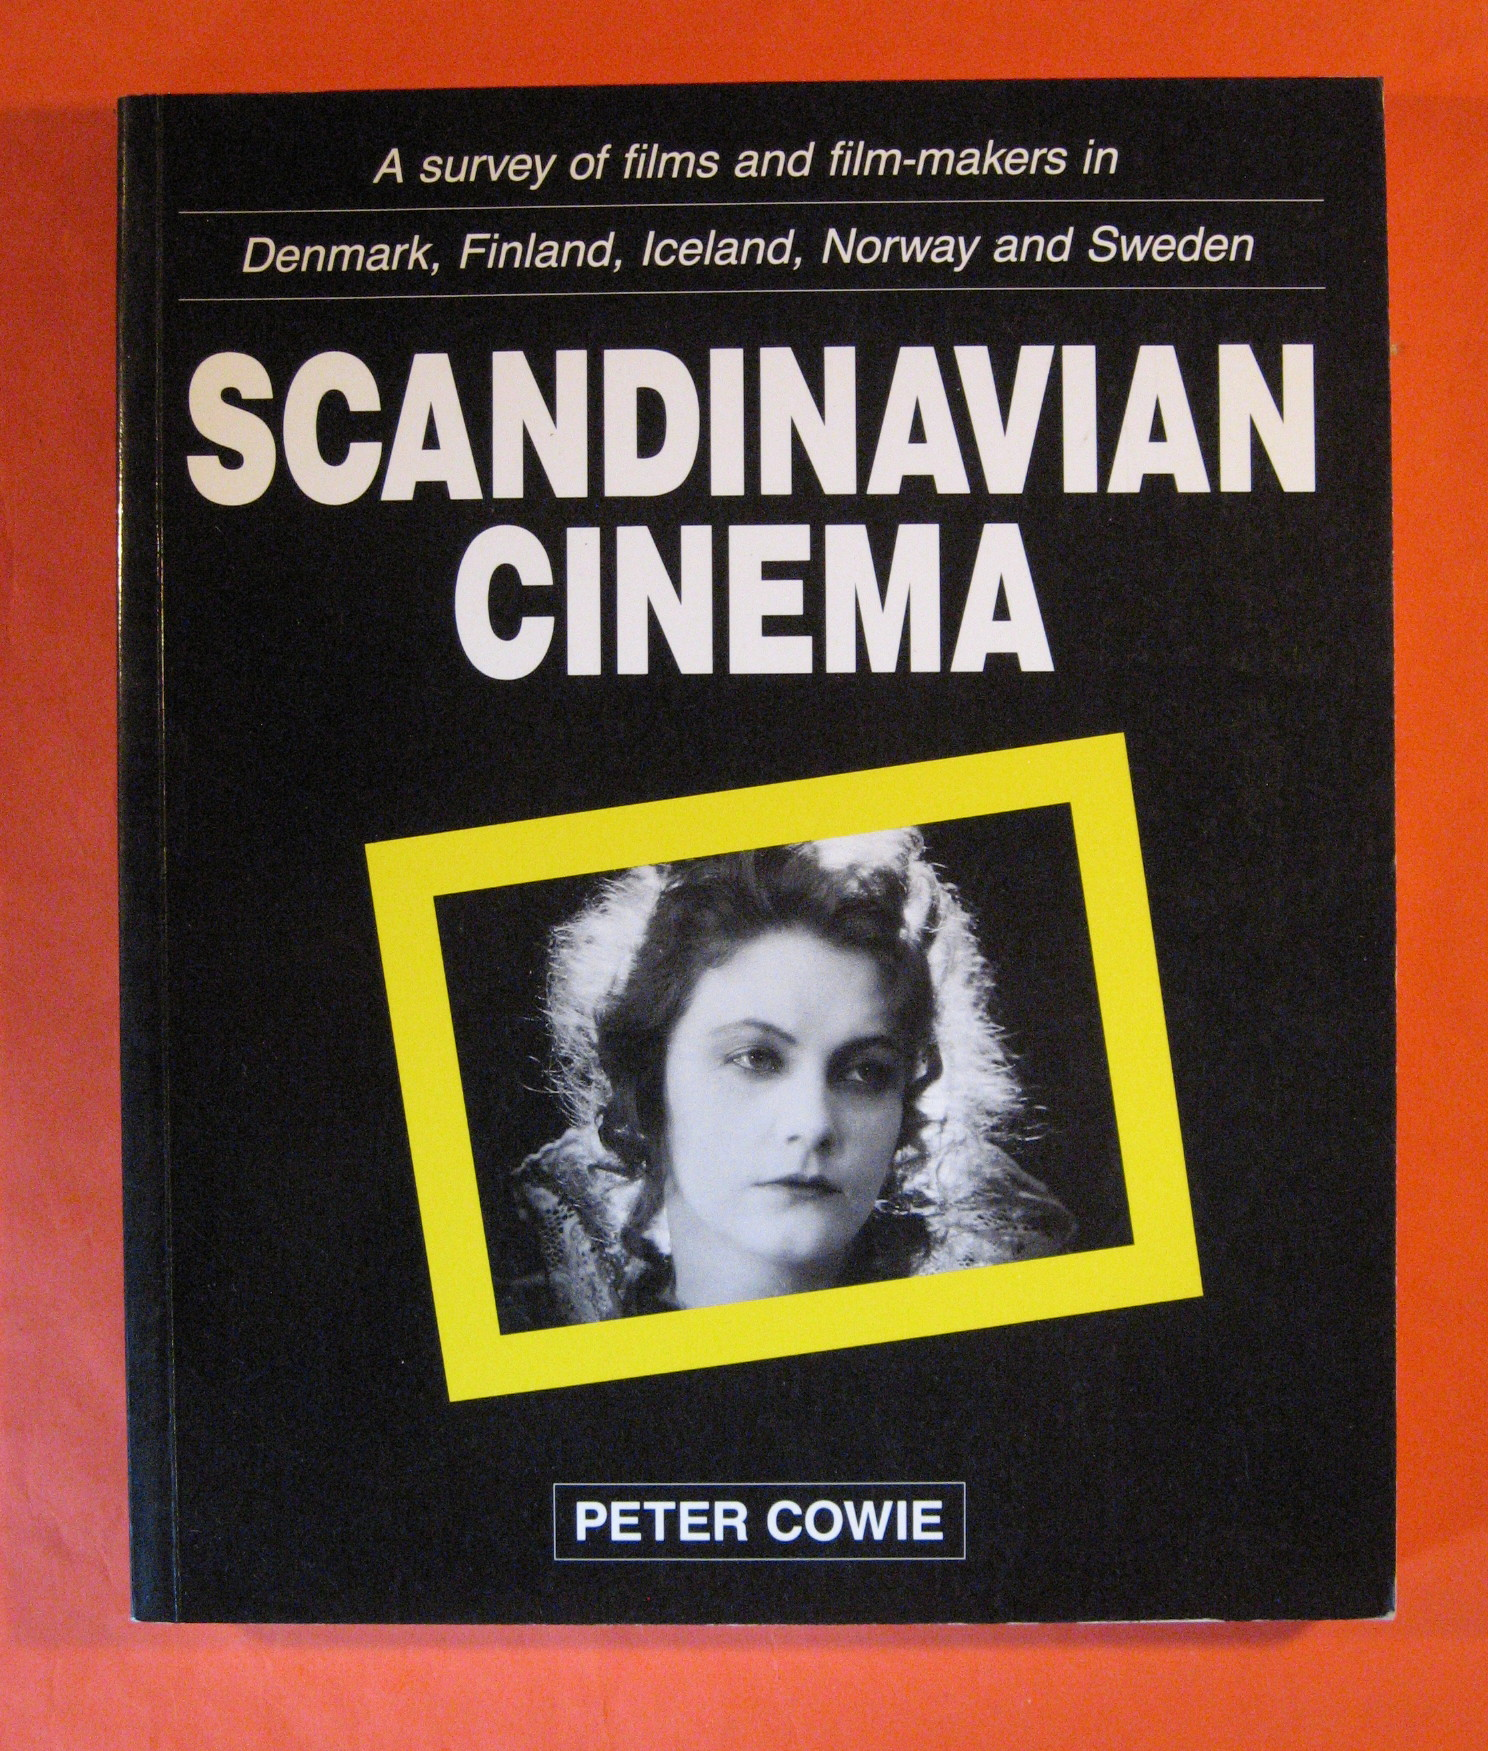 Scandinavian Cinema: a Survey of Films and Film-Makers in Denmark, Finland, Iceland, Norway and Sweden, Cowie, Peter; Buquet, Francoise;  Pitkanen, Risto-Mikael; Talboom, Godfried